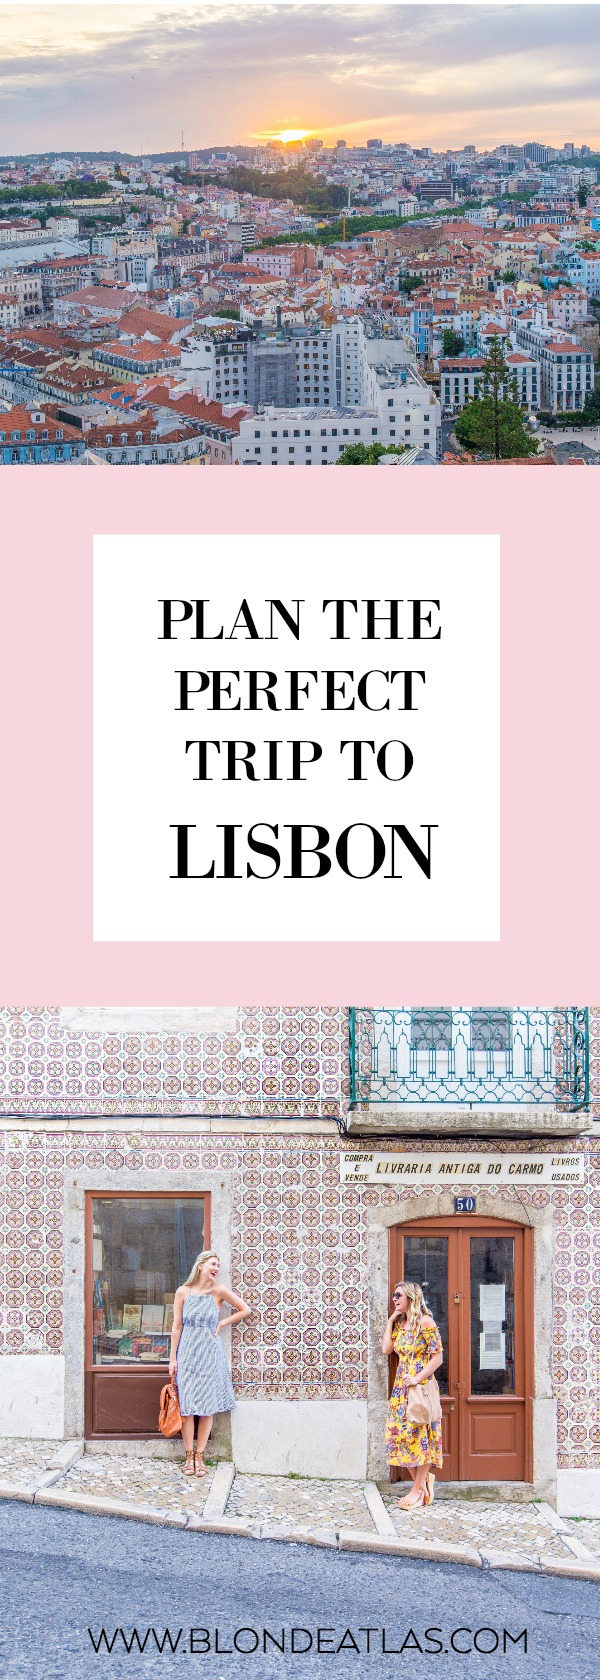 plan the perfect trip to lisbon portugal